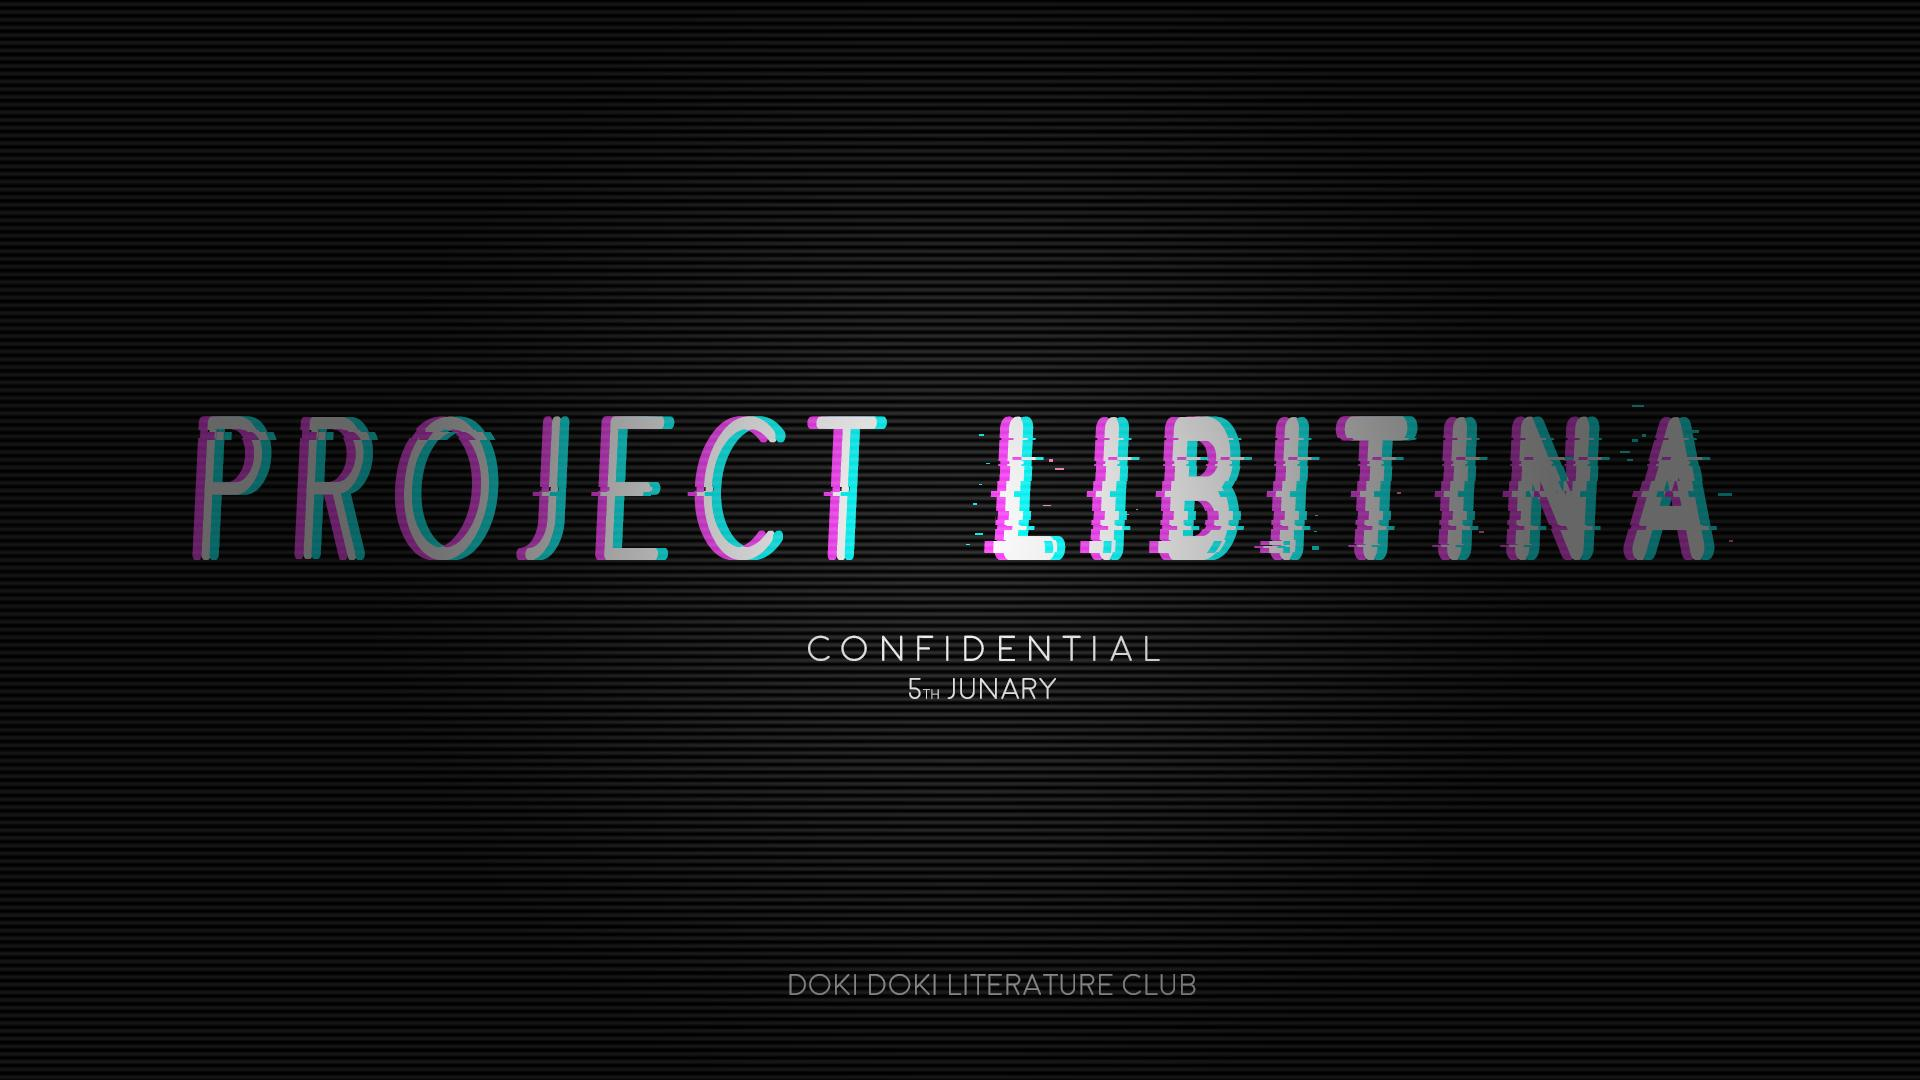 Project Libitina Confidential Fonts Forum Dafont Com Project libitina is the name of what is presumed to be an upcoming game by team salvato, though no confirmation of this has been made. project libitina confidential fonts